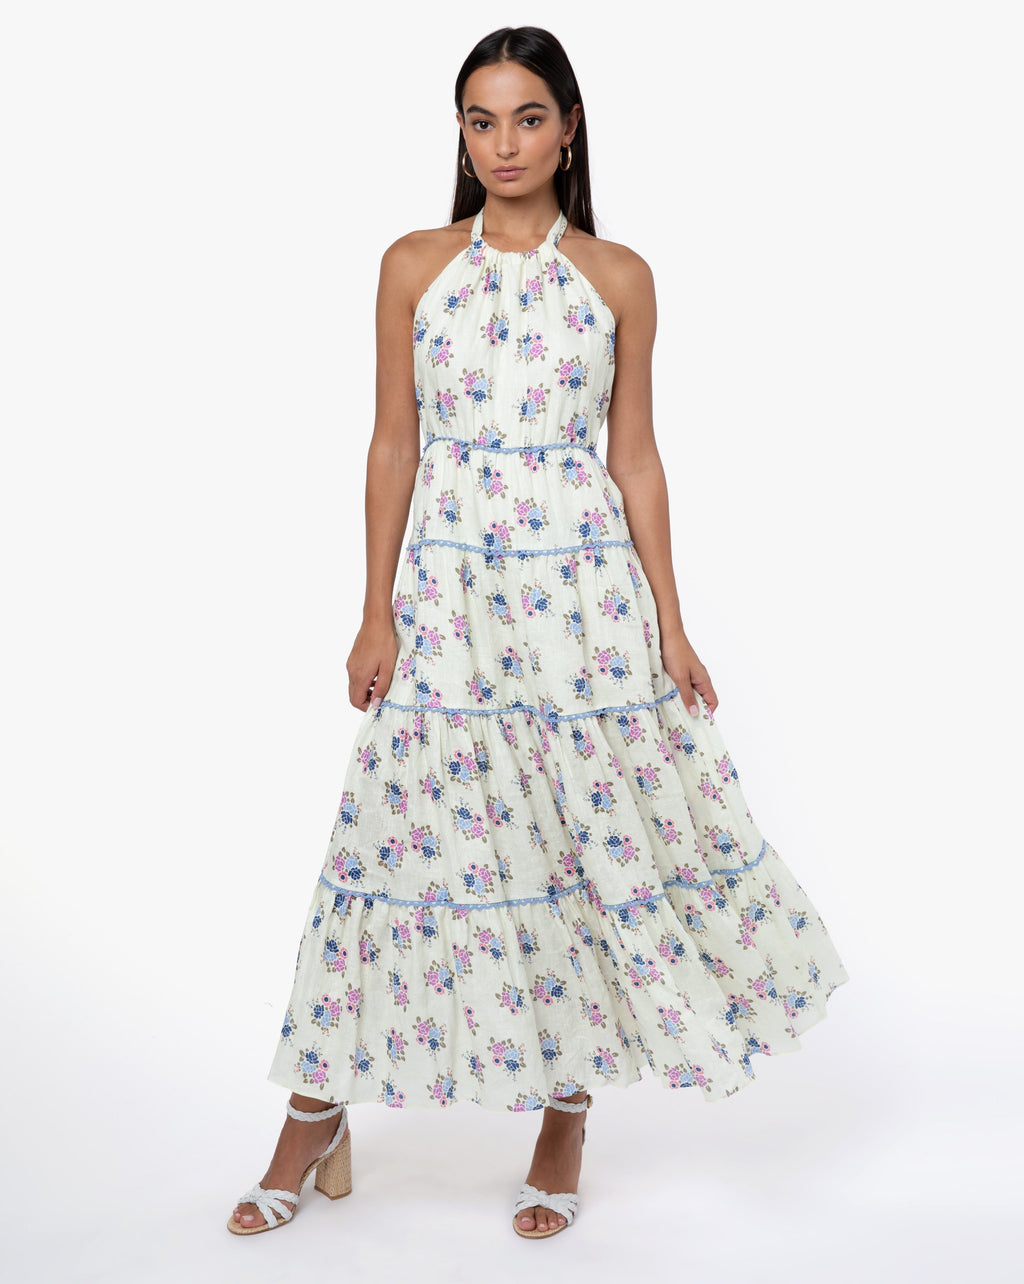 India Dress - Rose Blue